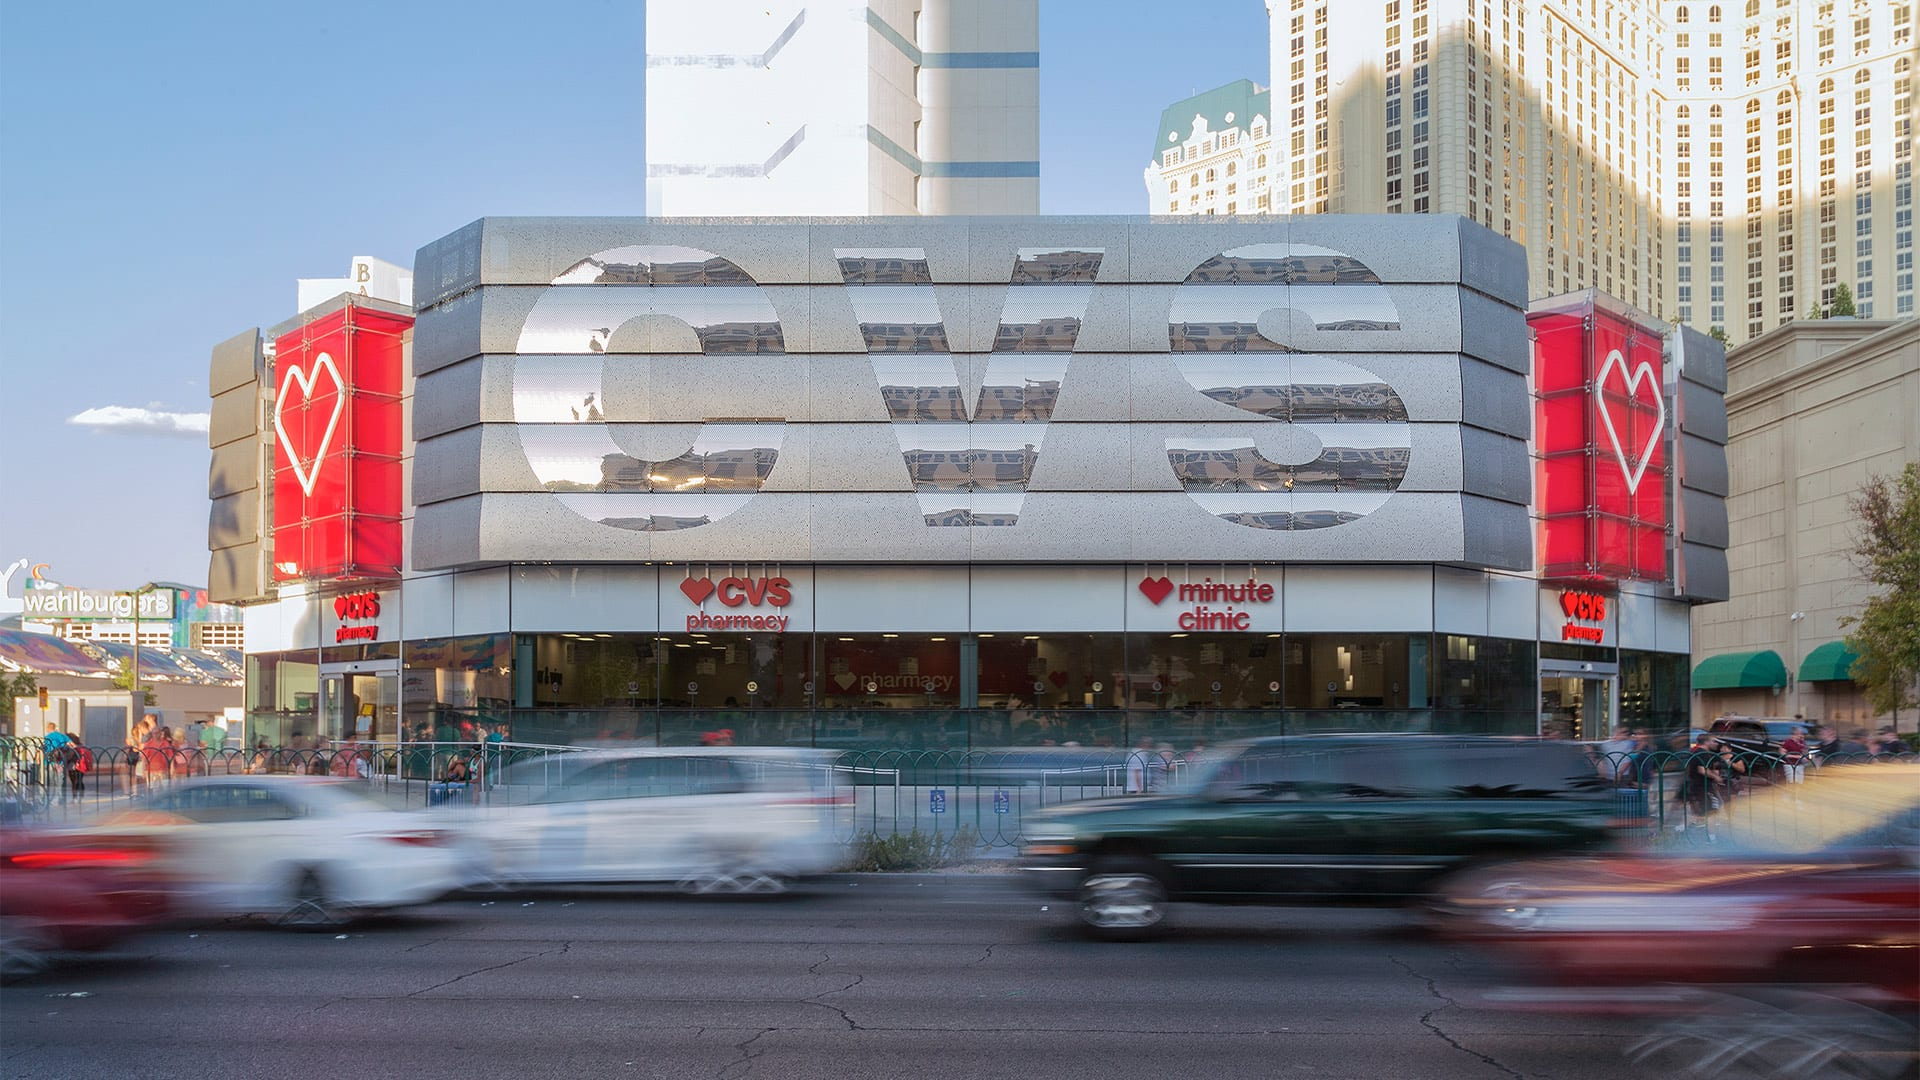 CVS Pharmacy at Bally's, Las Vegas